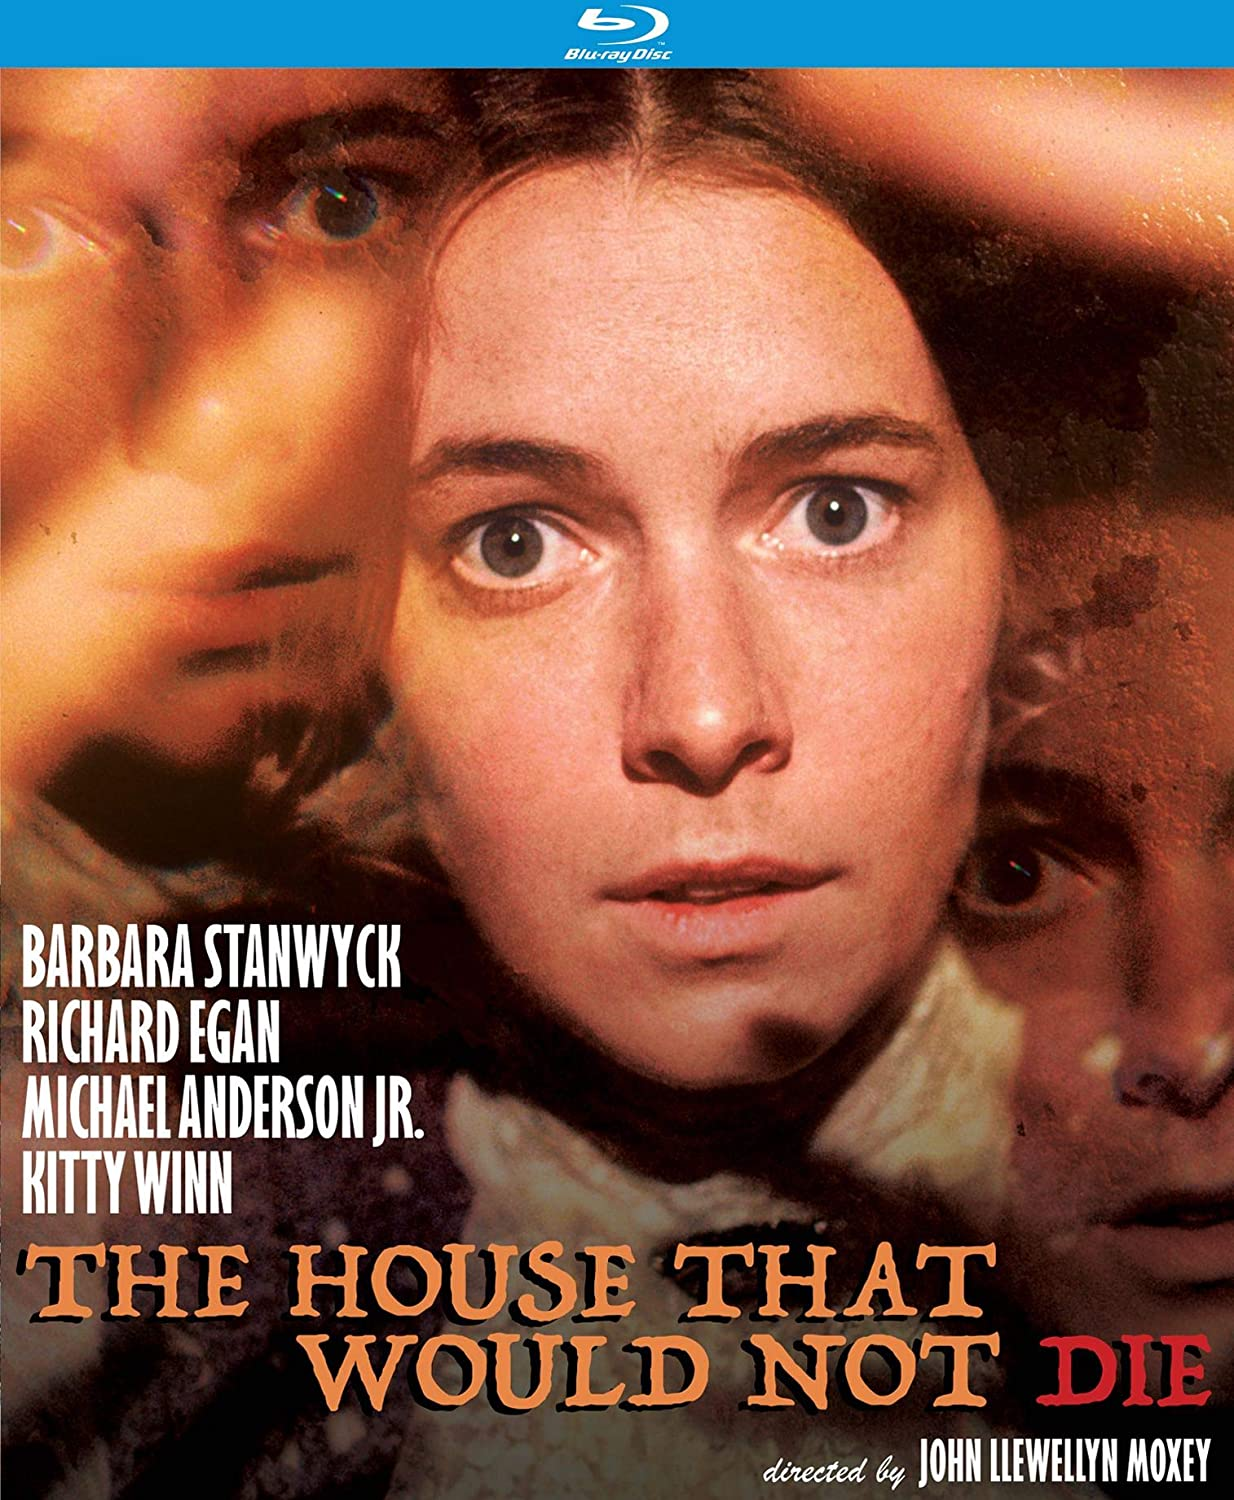 The House That Would Not Die (Special Edition) [Blu-ray]